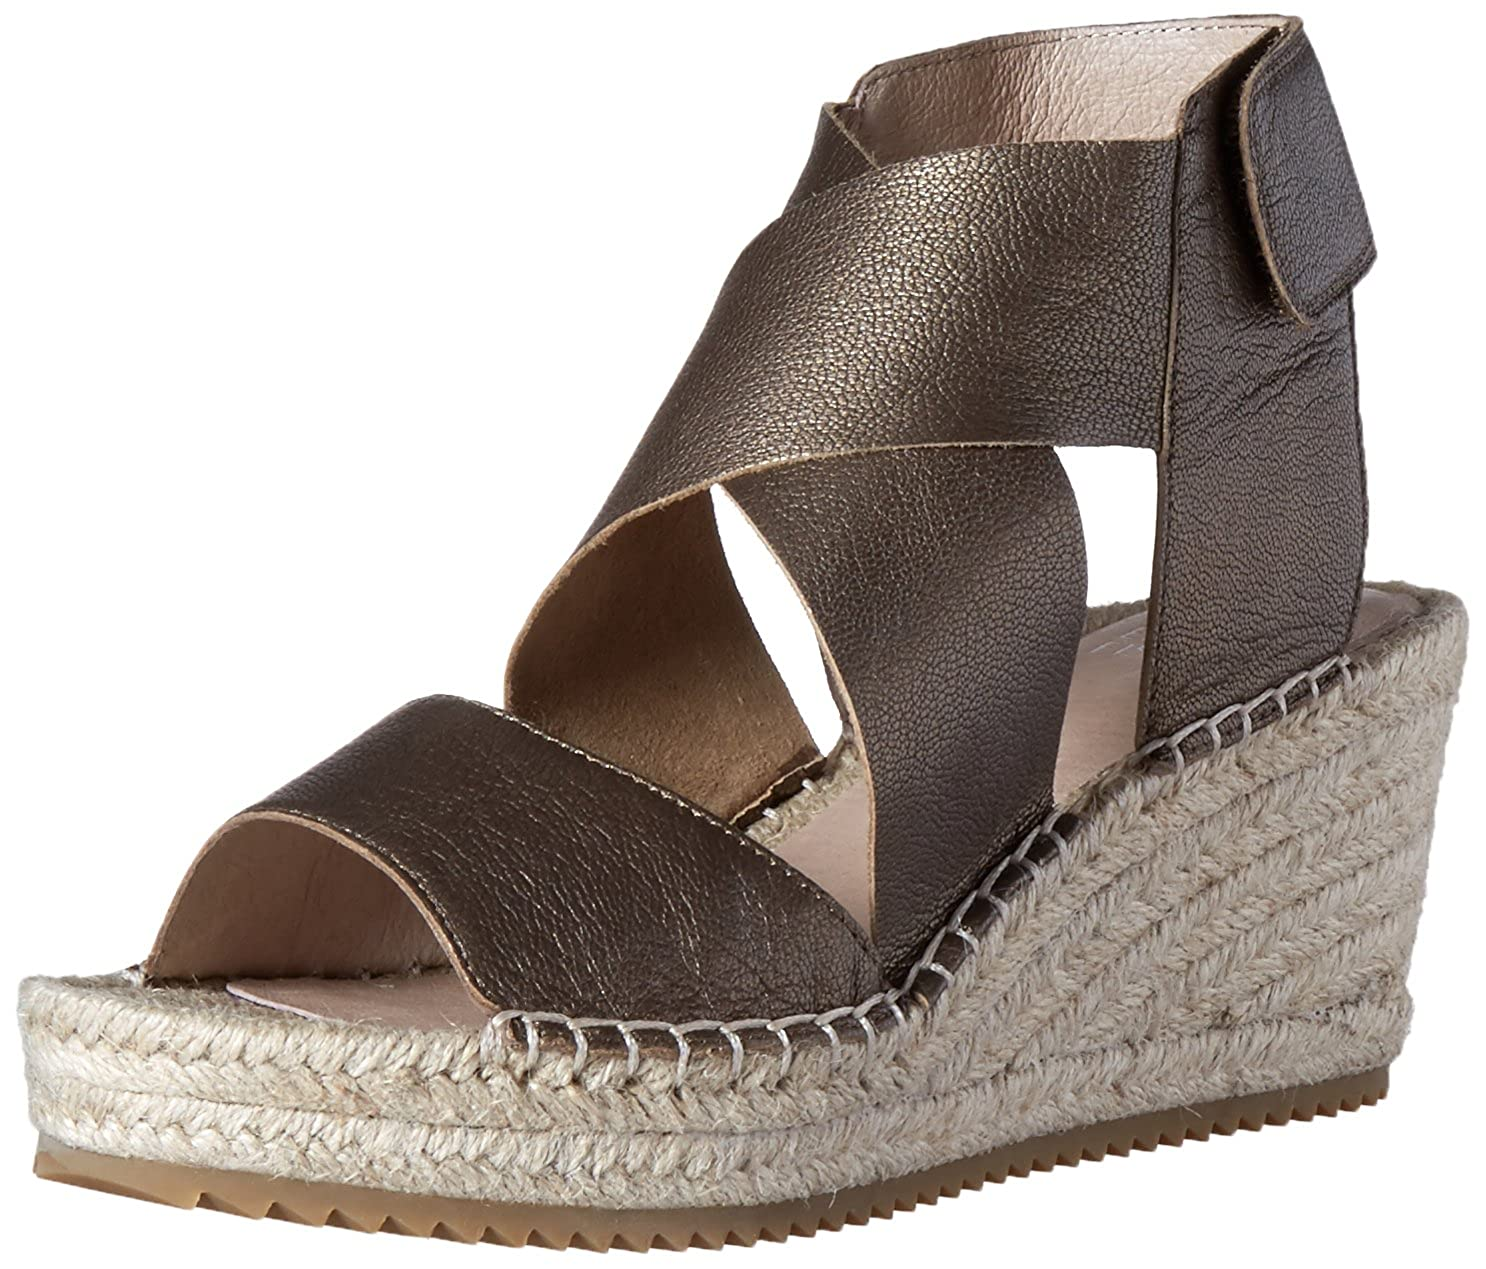 dcd016a2a35 Eileen Fisher Women's Willow-ml Espadrille Wedge Sandal